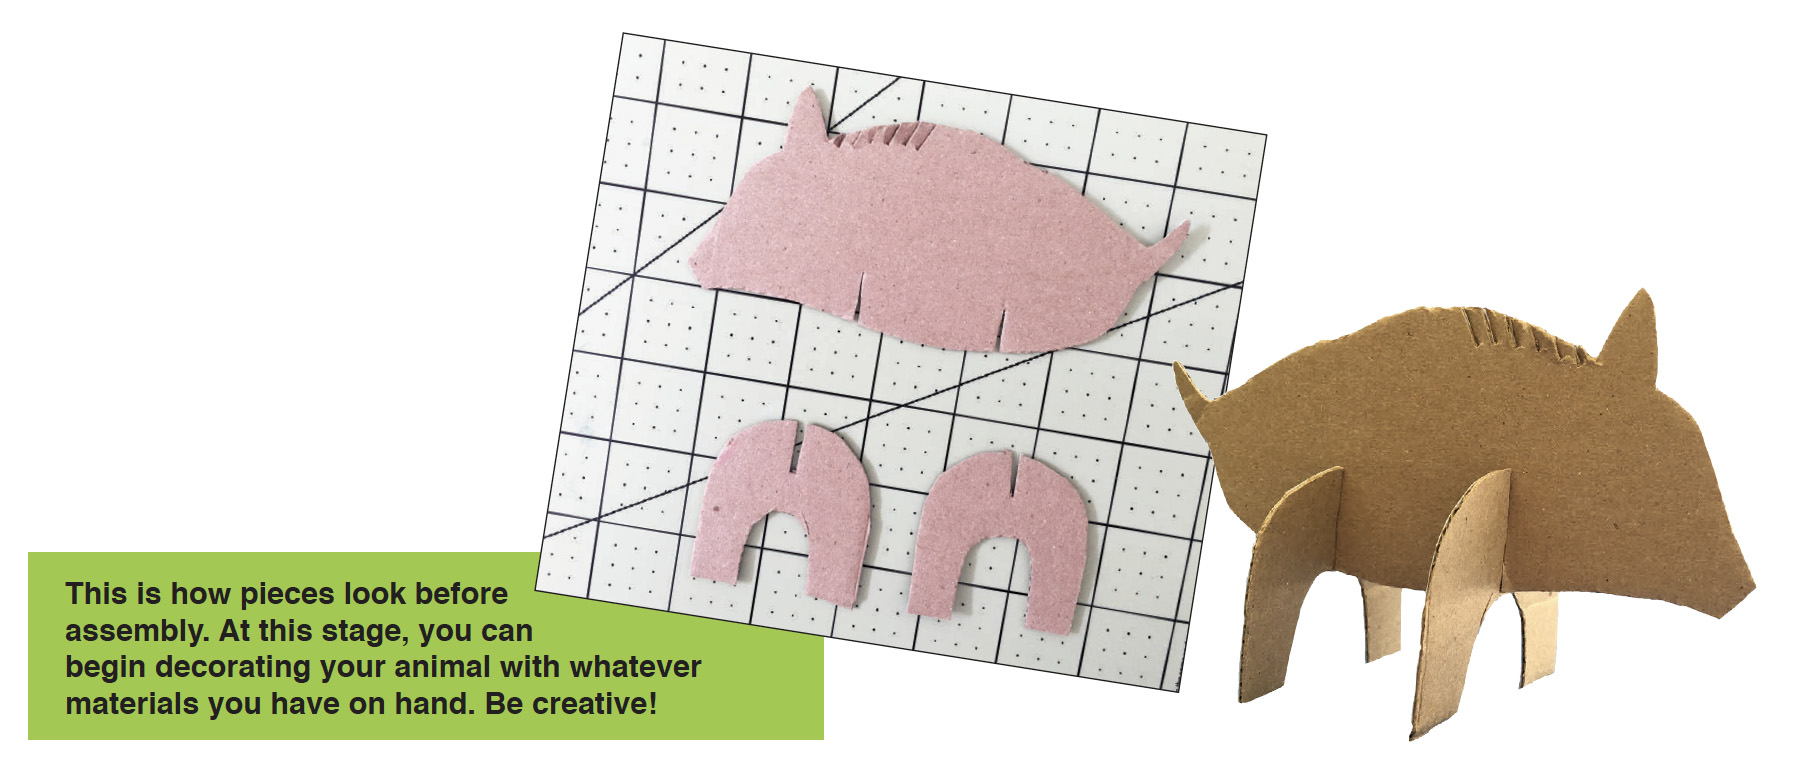 a diagram of how animal cardboard cutouts look before assembly